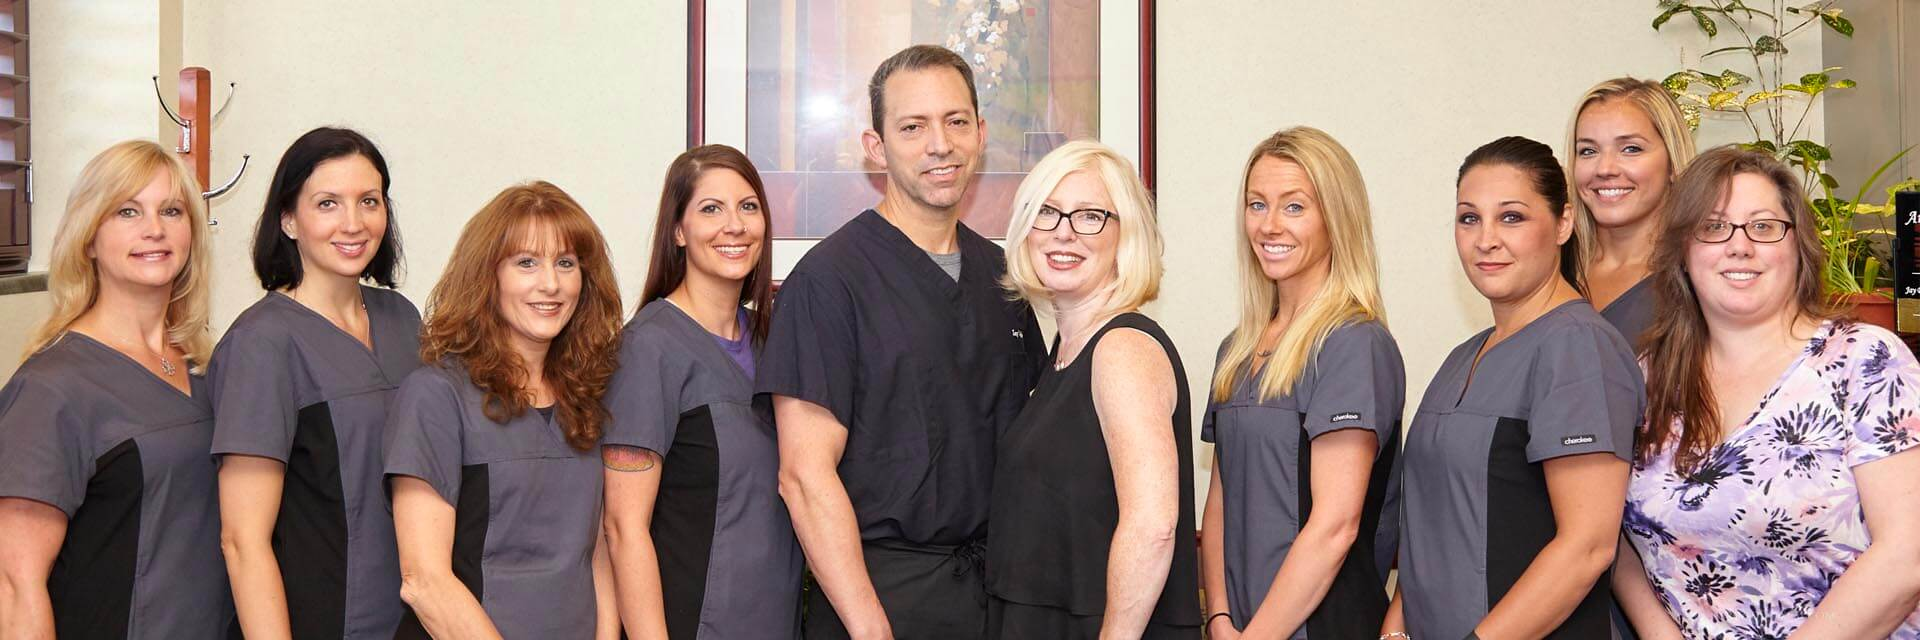 Dr. Jay Lubliner's Team in Massapequa